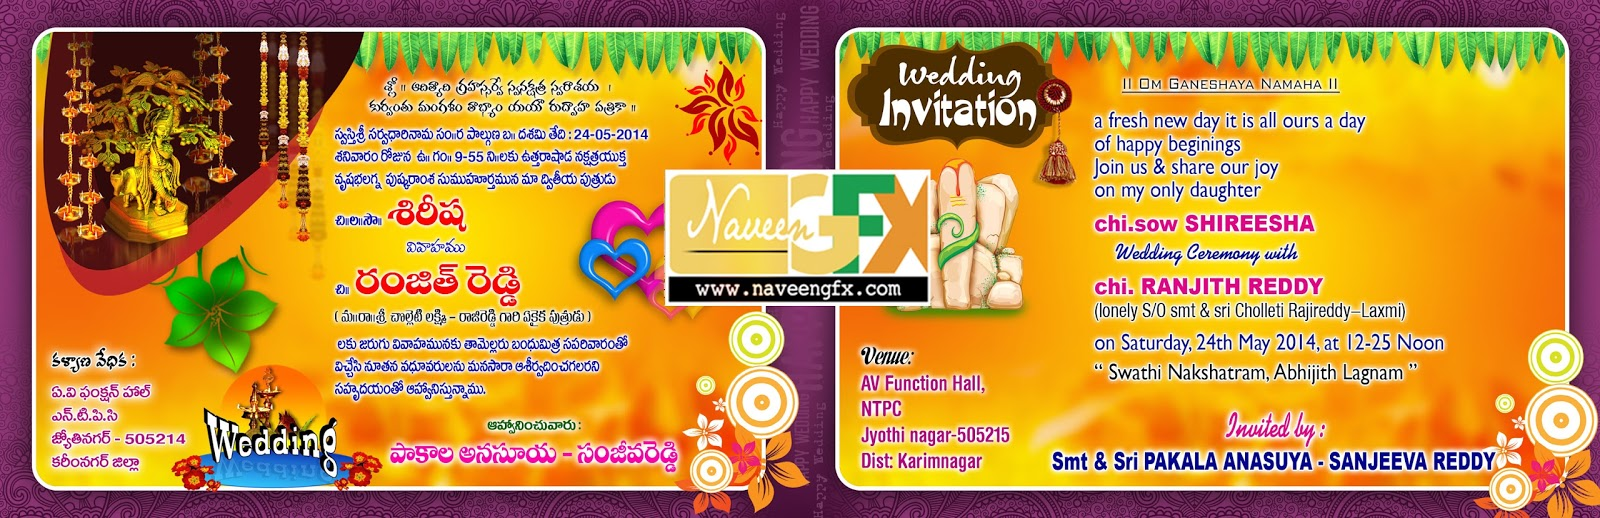 Wedding invitation wording psd templates free download naveengfx indian wedding invitation card psd template ideas naveengfx stopboris Choice Image